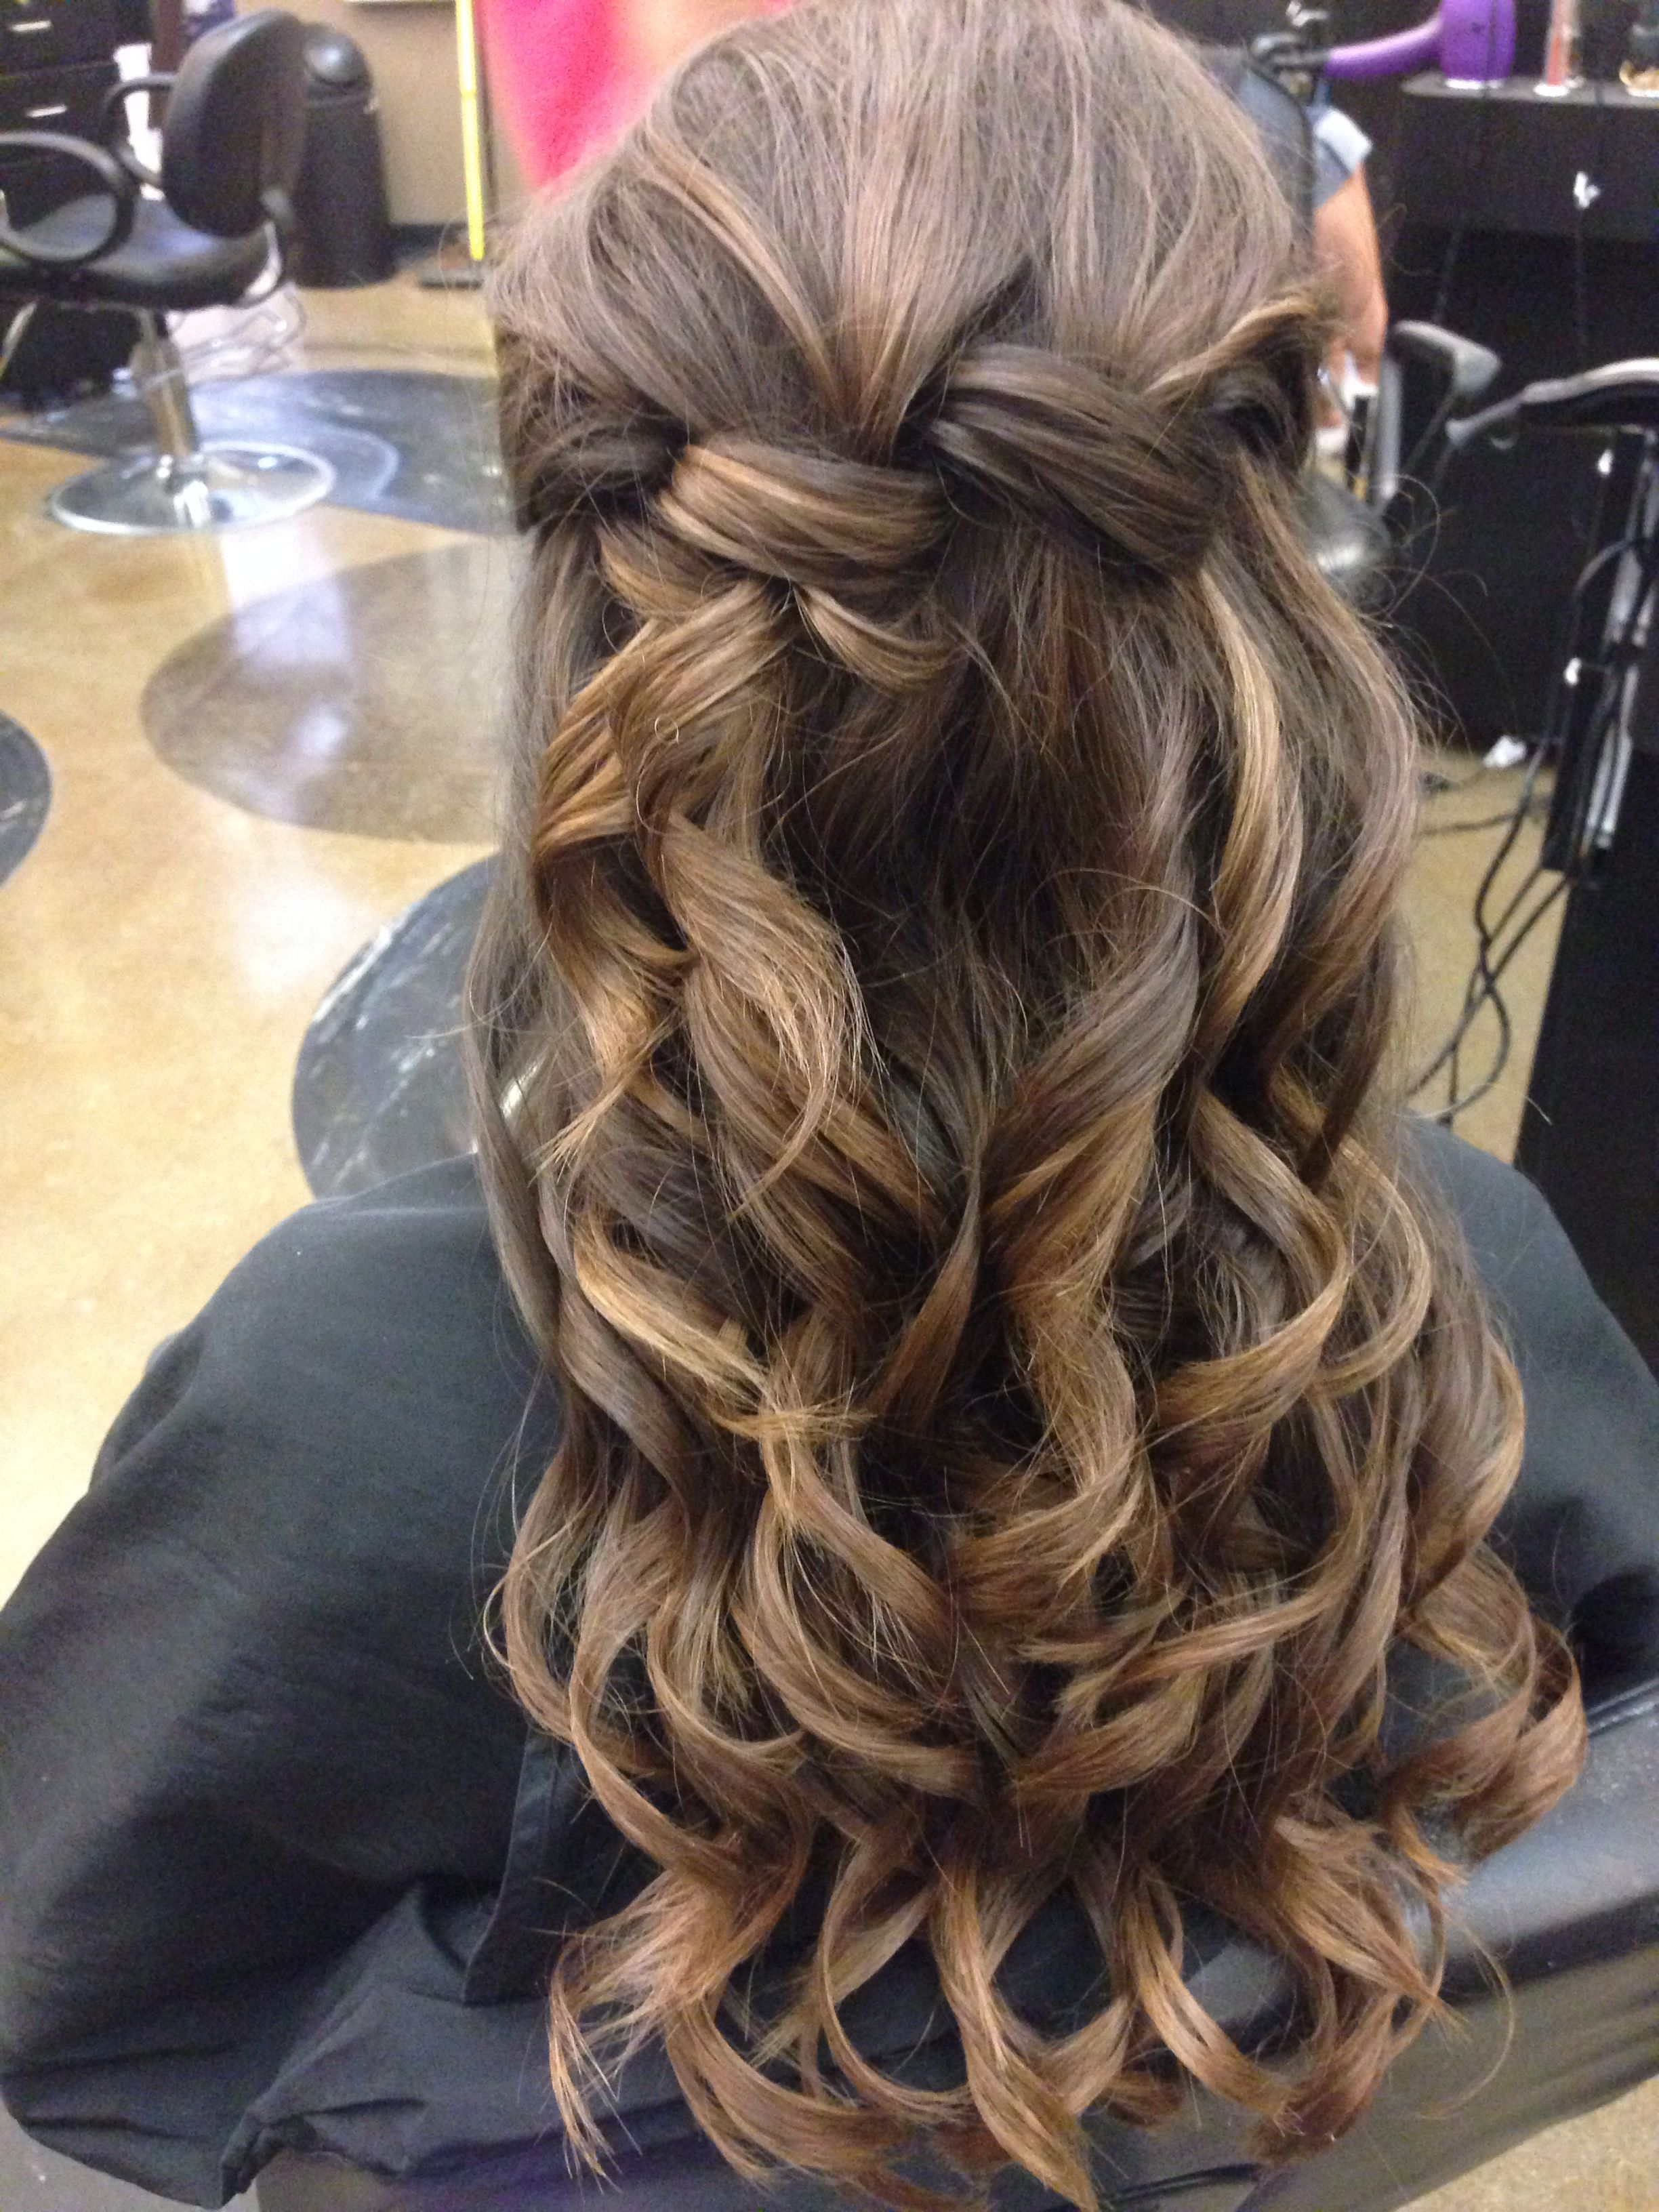 Curly half up twisted style Hair Hairstyles and more